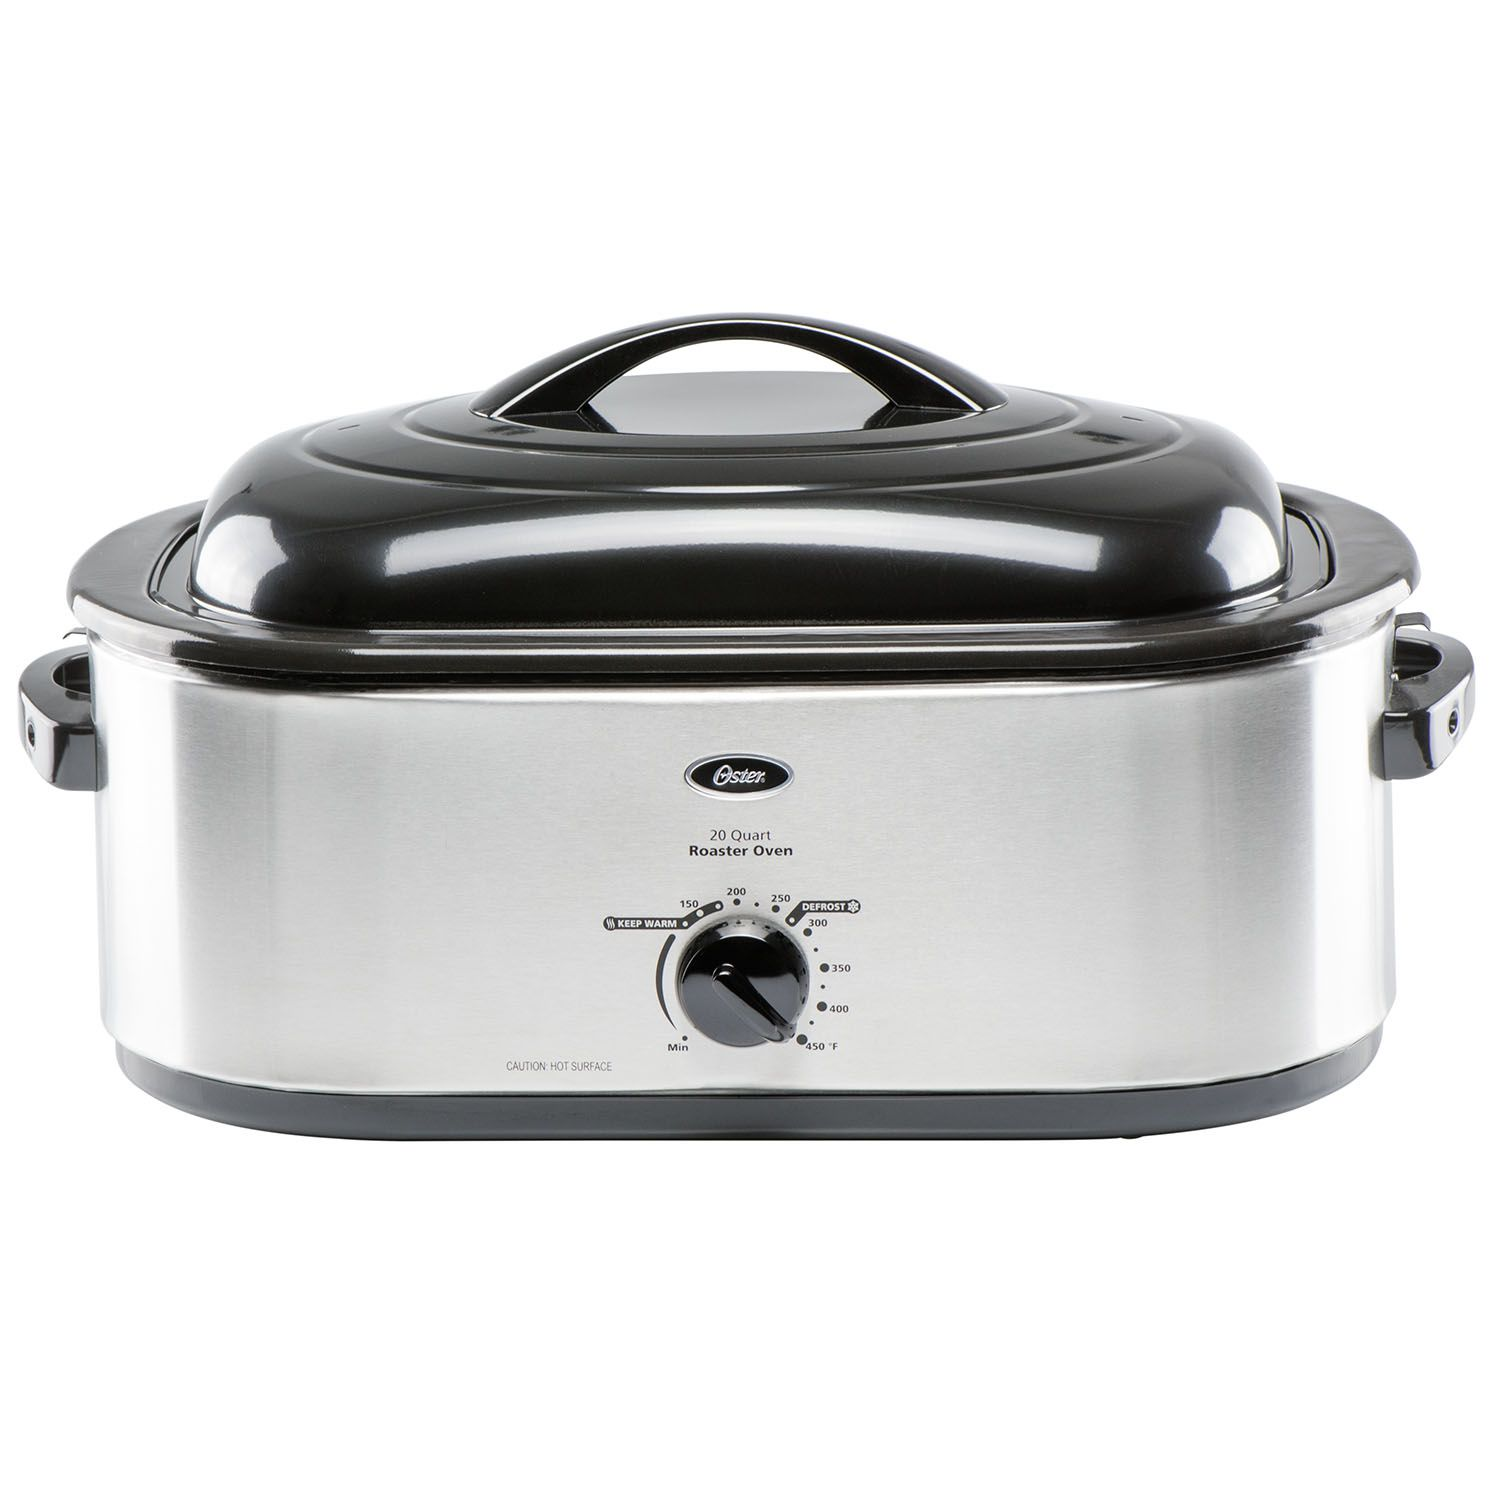 Oster 24-Pound Turkey Roaster Oven, 20-Quart Capacity, Stainless-Steel